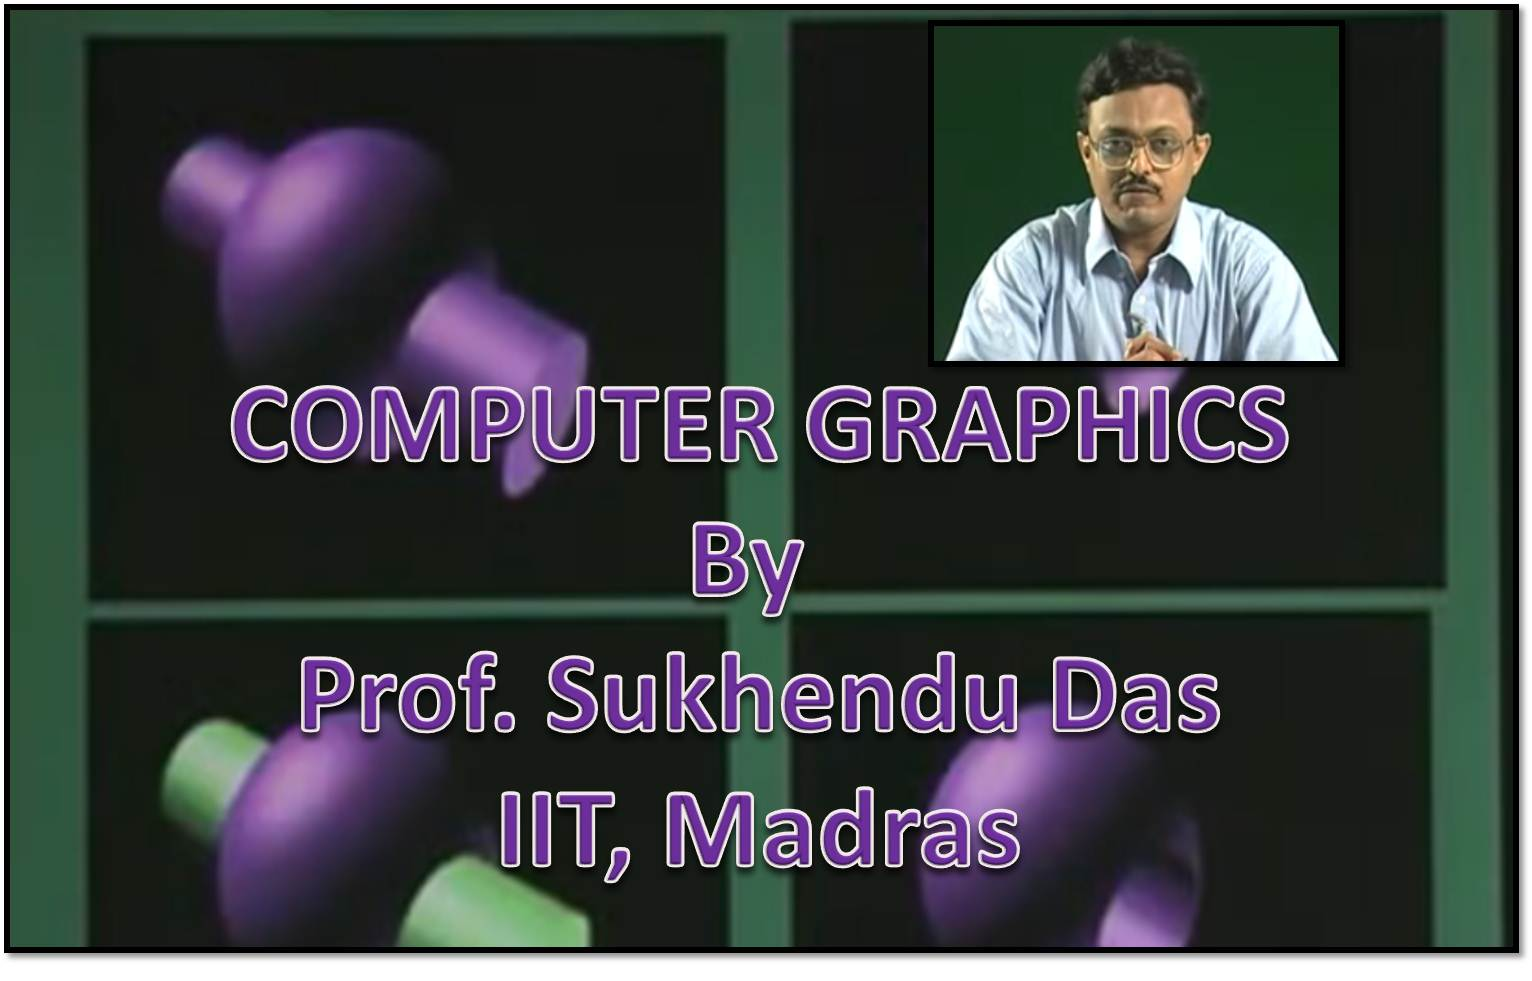 http://study.aisectonline.com/images/SubCategory/Video Lectures on Computer Graphics by Dr. Sukhendu Das,  IIT Madras.jpg